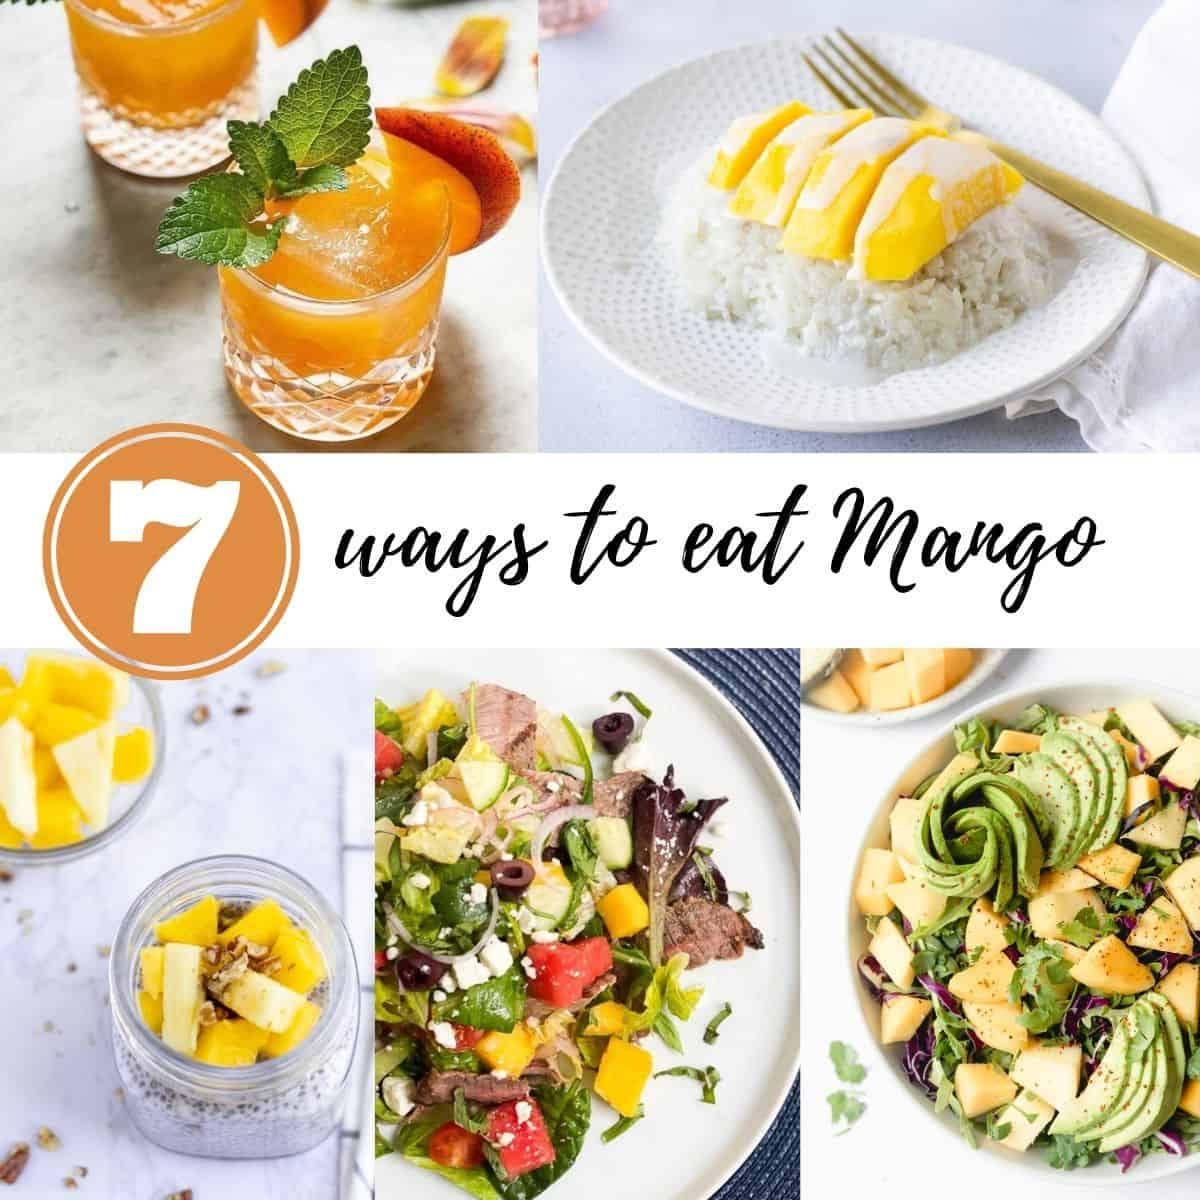 collage of photos with text saying, '7 ways to eat mango'.